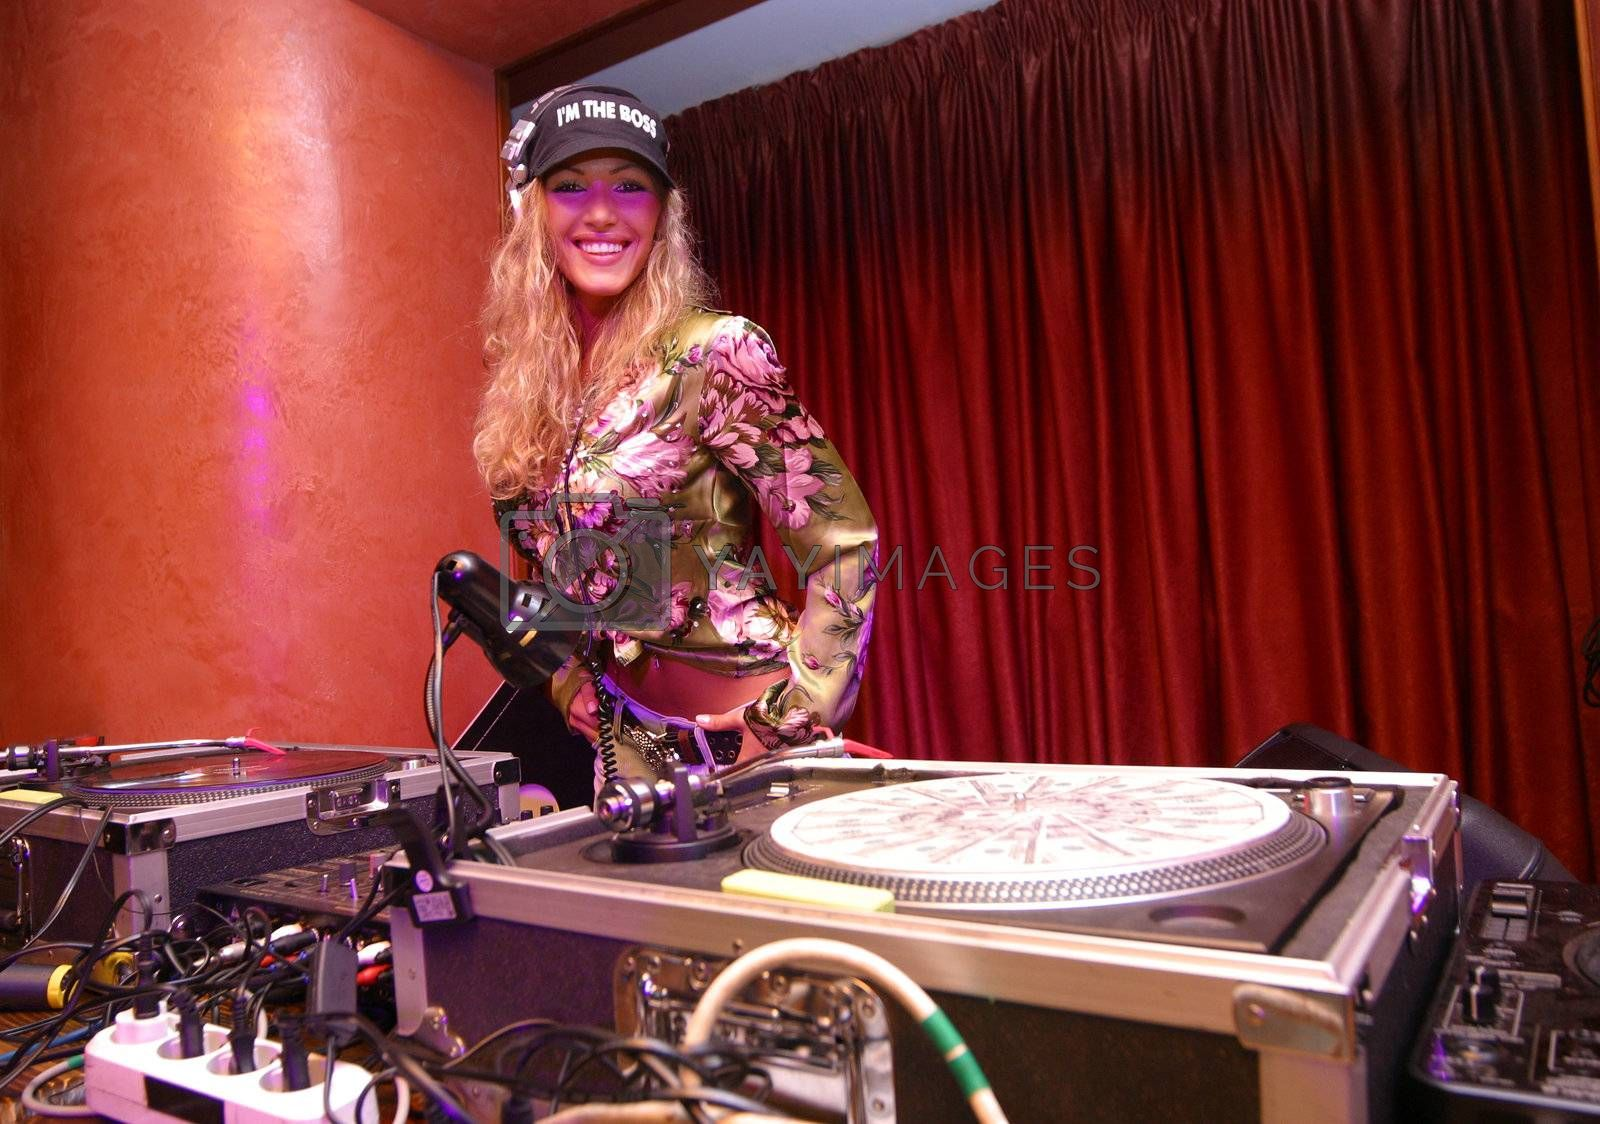 Known Russian dj-girl Benzina